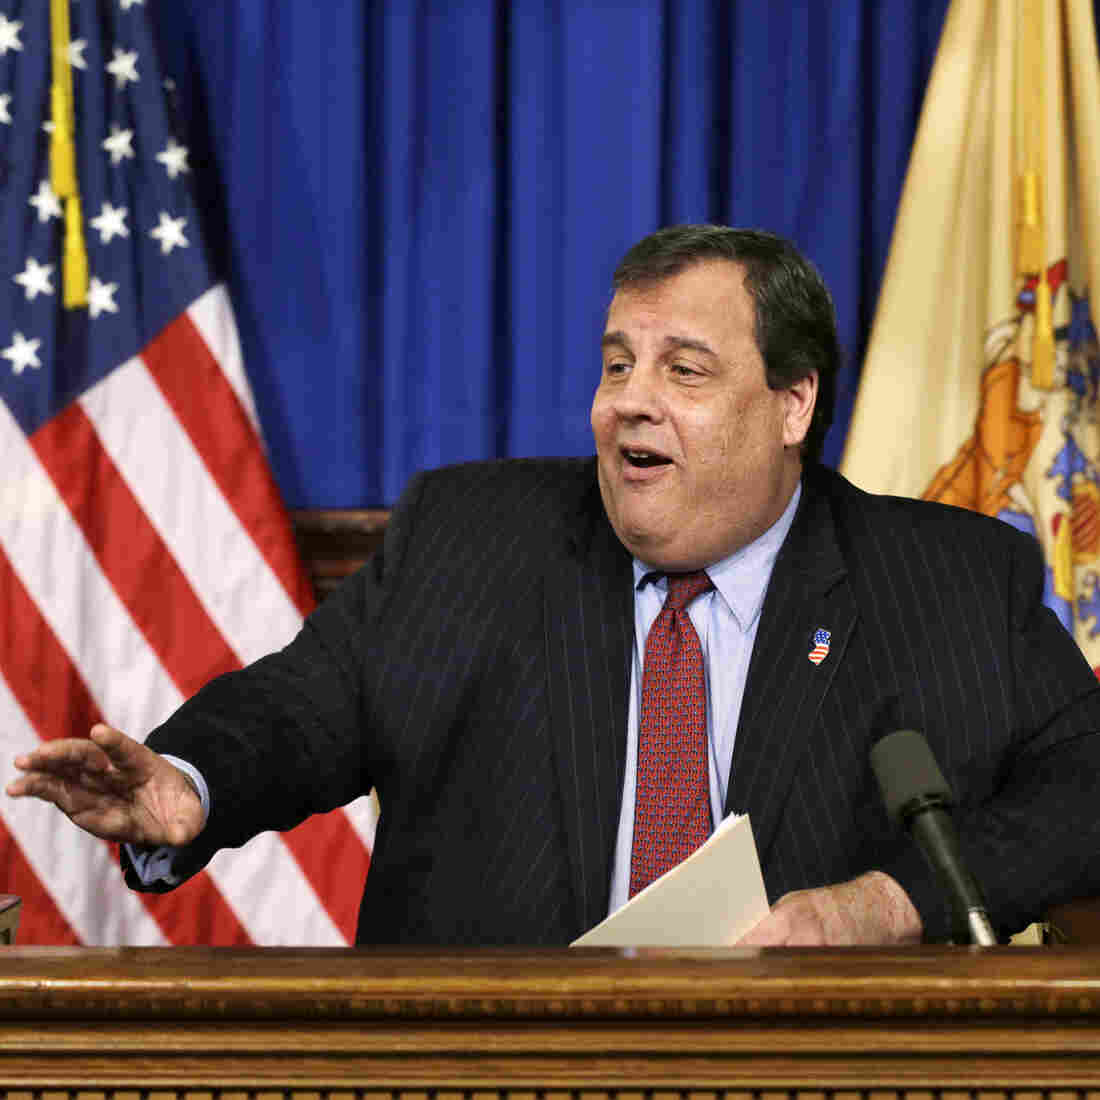 Republican New Jersey Gov. Chris Christie speaks with reporters in Trenton, N.J., this month. Christie was not invited to this year's CPAC conference.